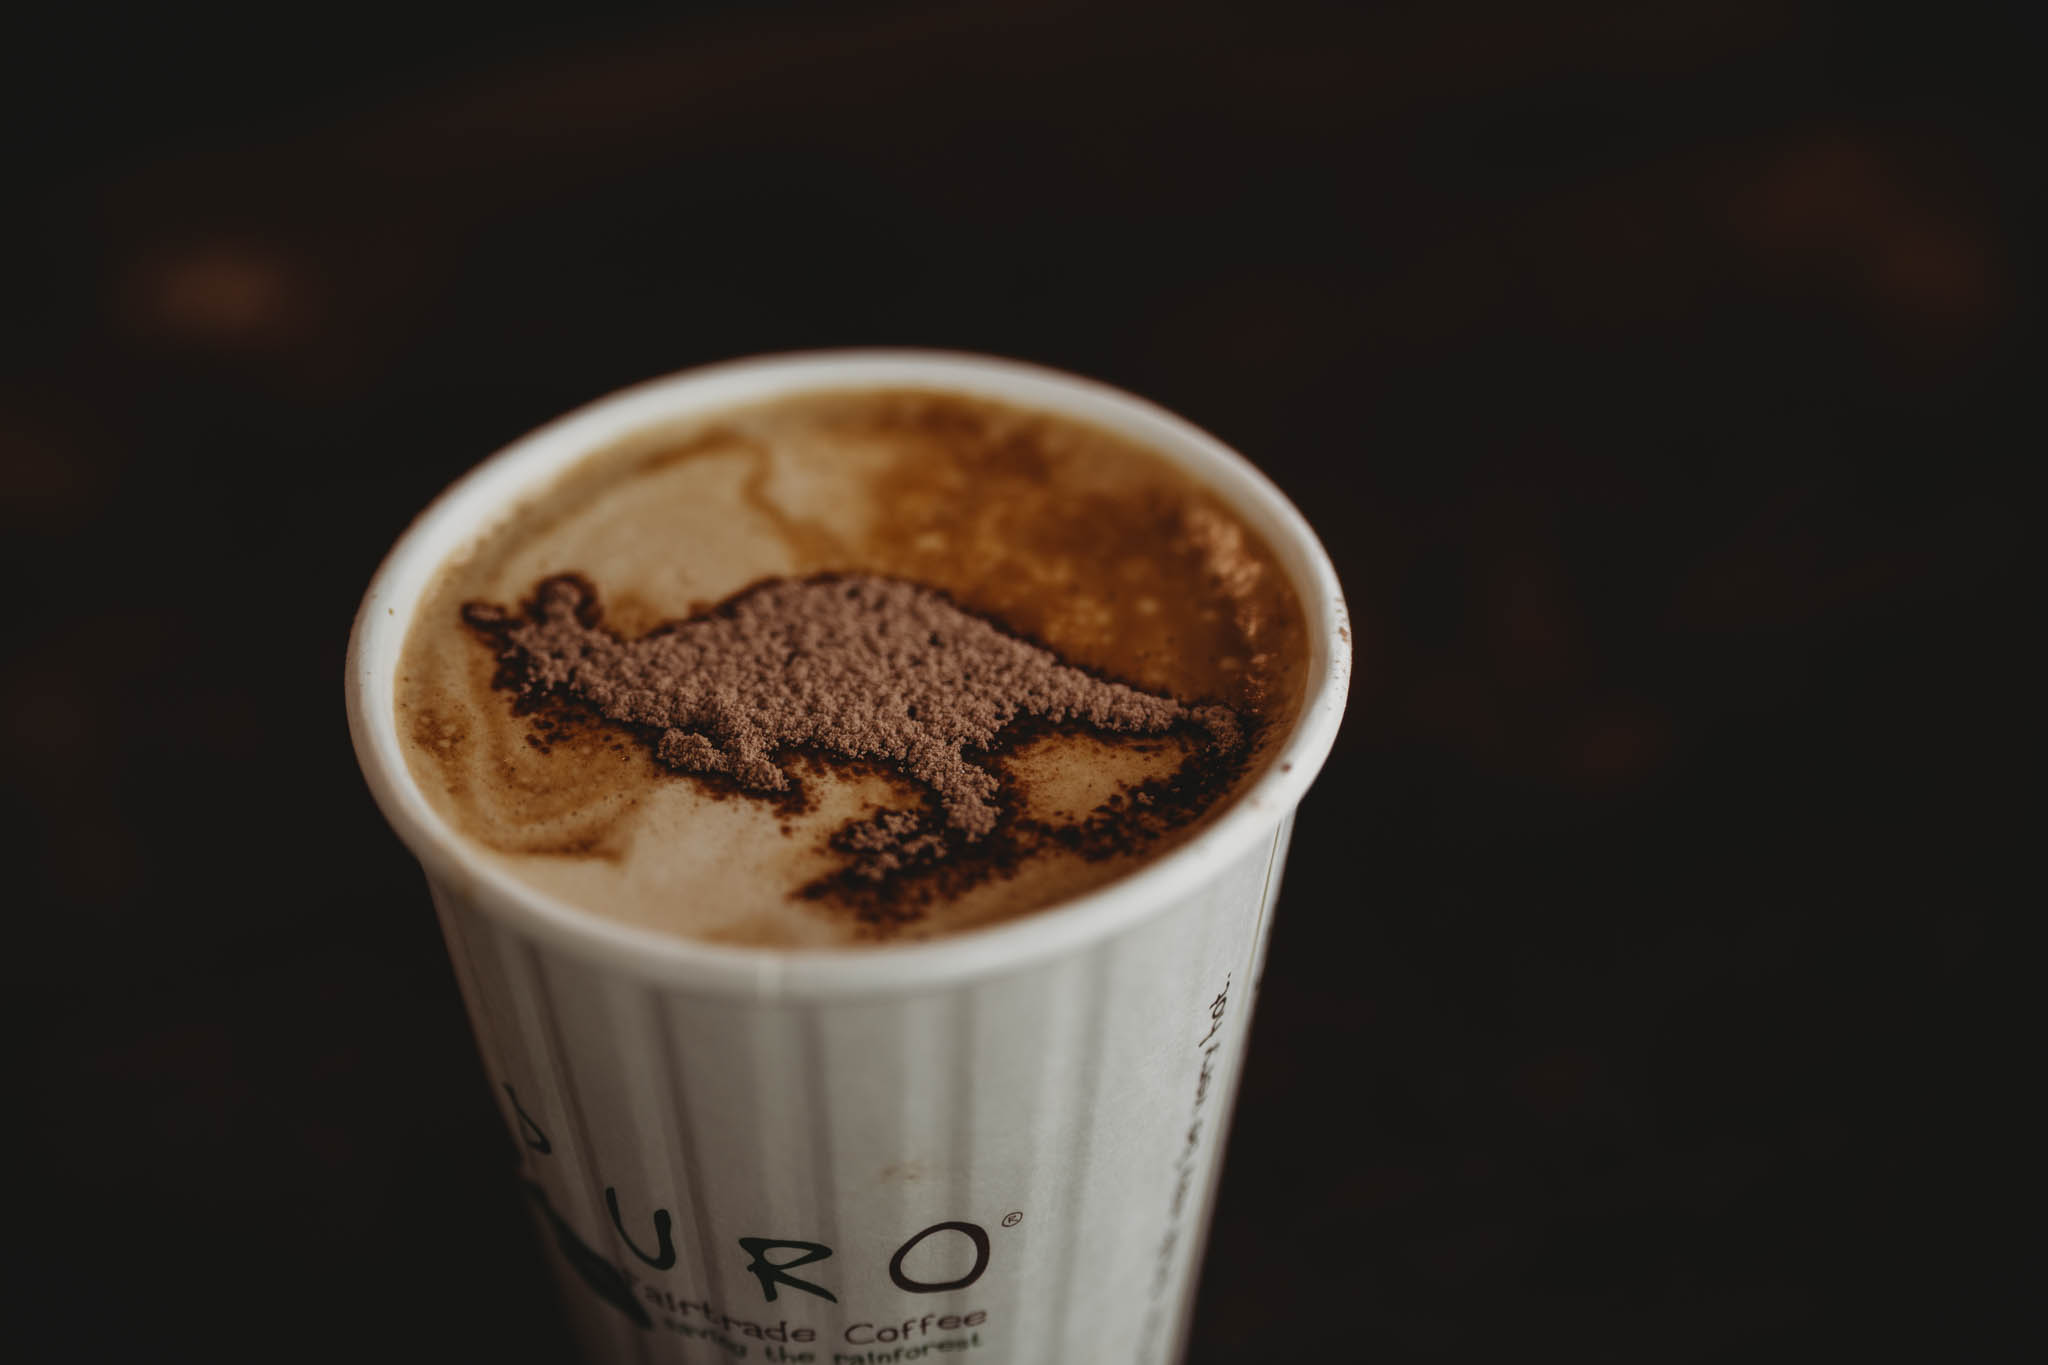 Coffee is always better when kangaroos and koalas are involved